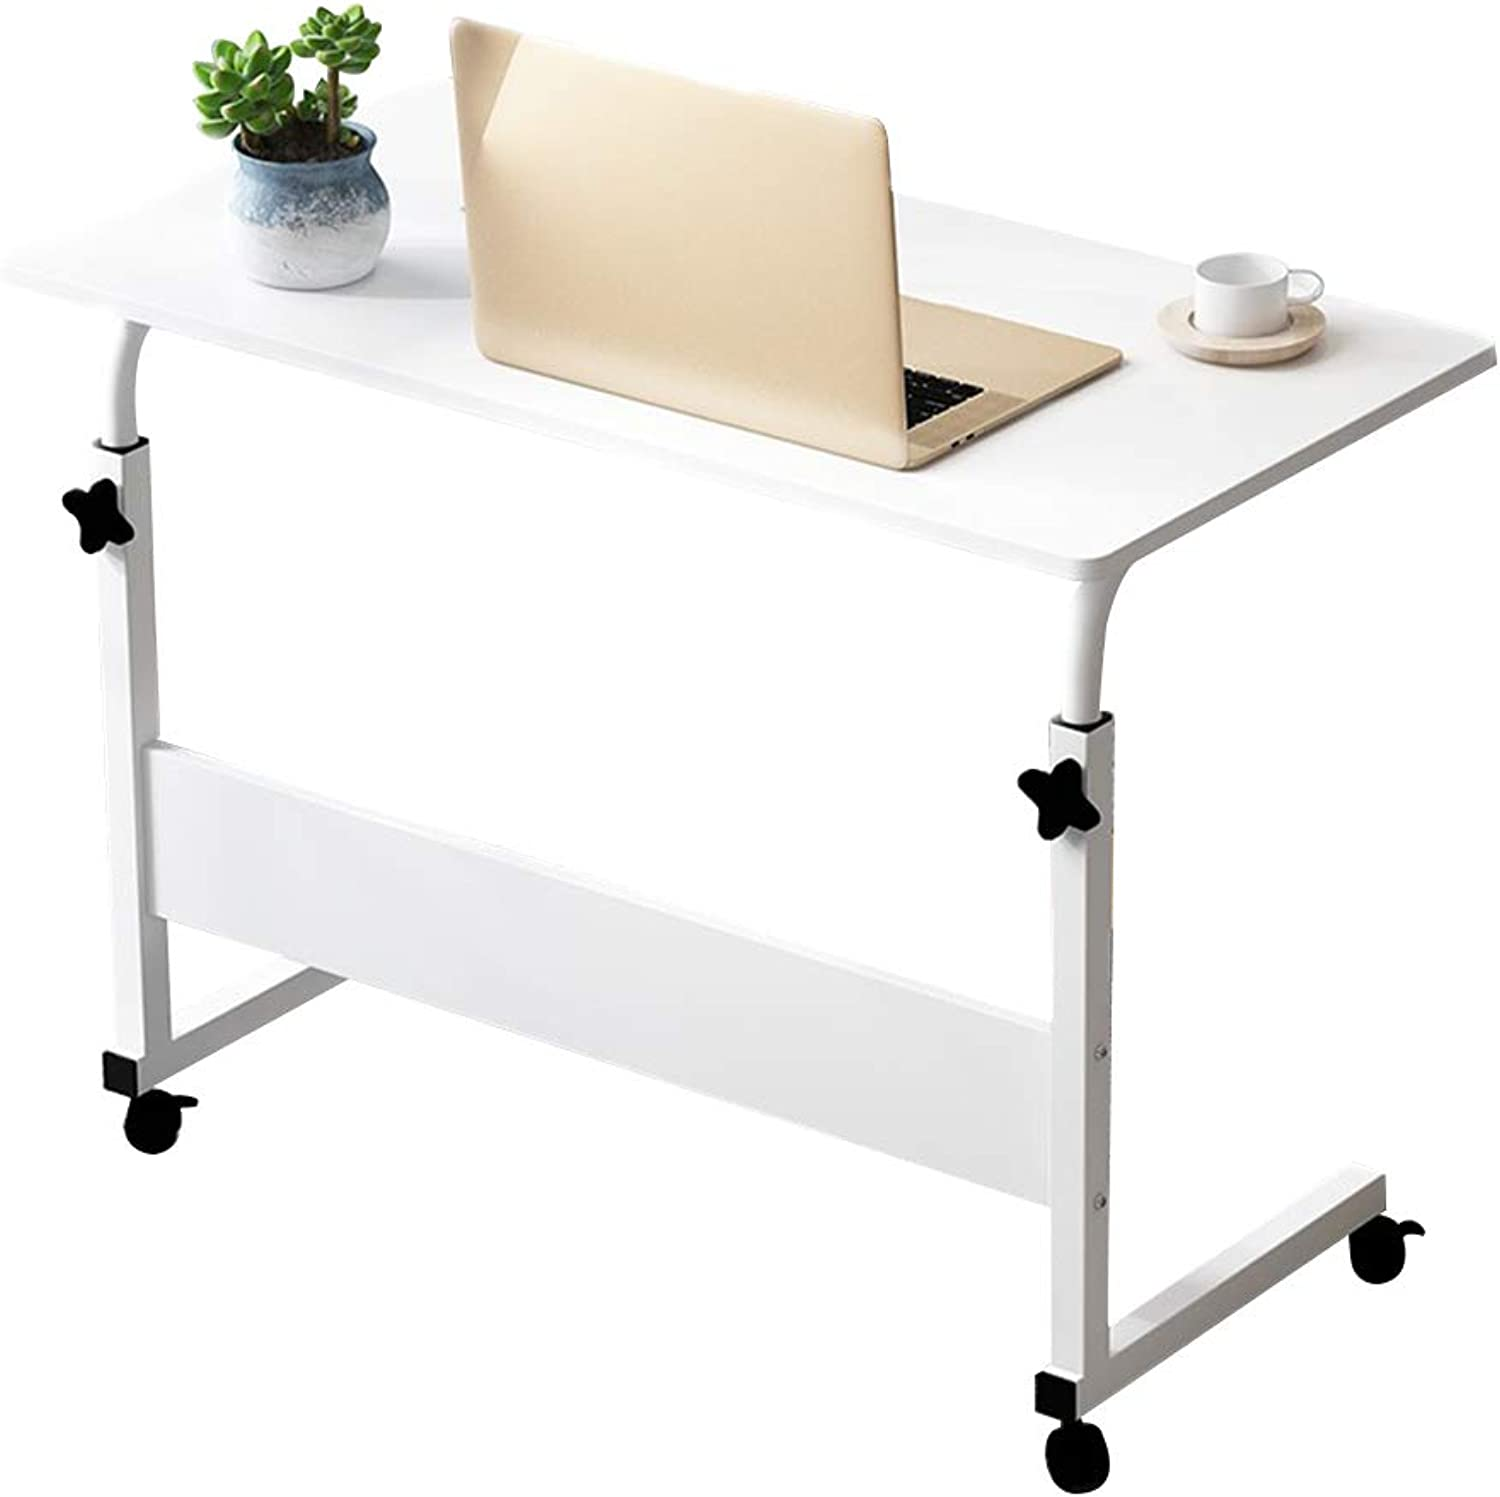 Coffee Table Lifting Side Tables Type C, Mobile Telescopic Notebook Writing Desk Household Bedside Nursing Table, 3 Sizes (Size   60  40 cm)